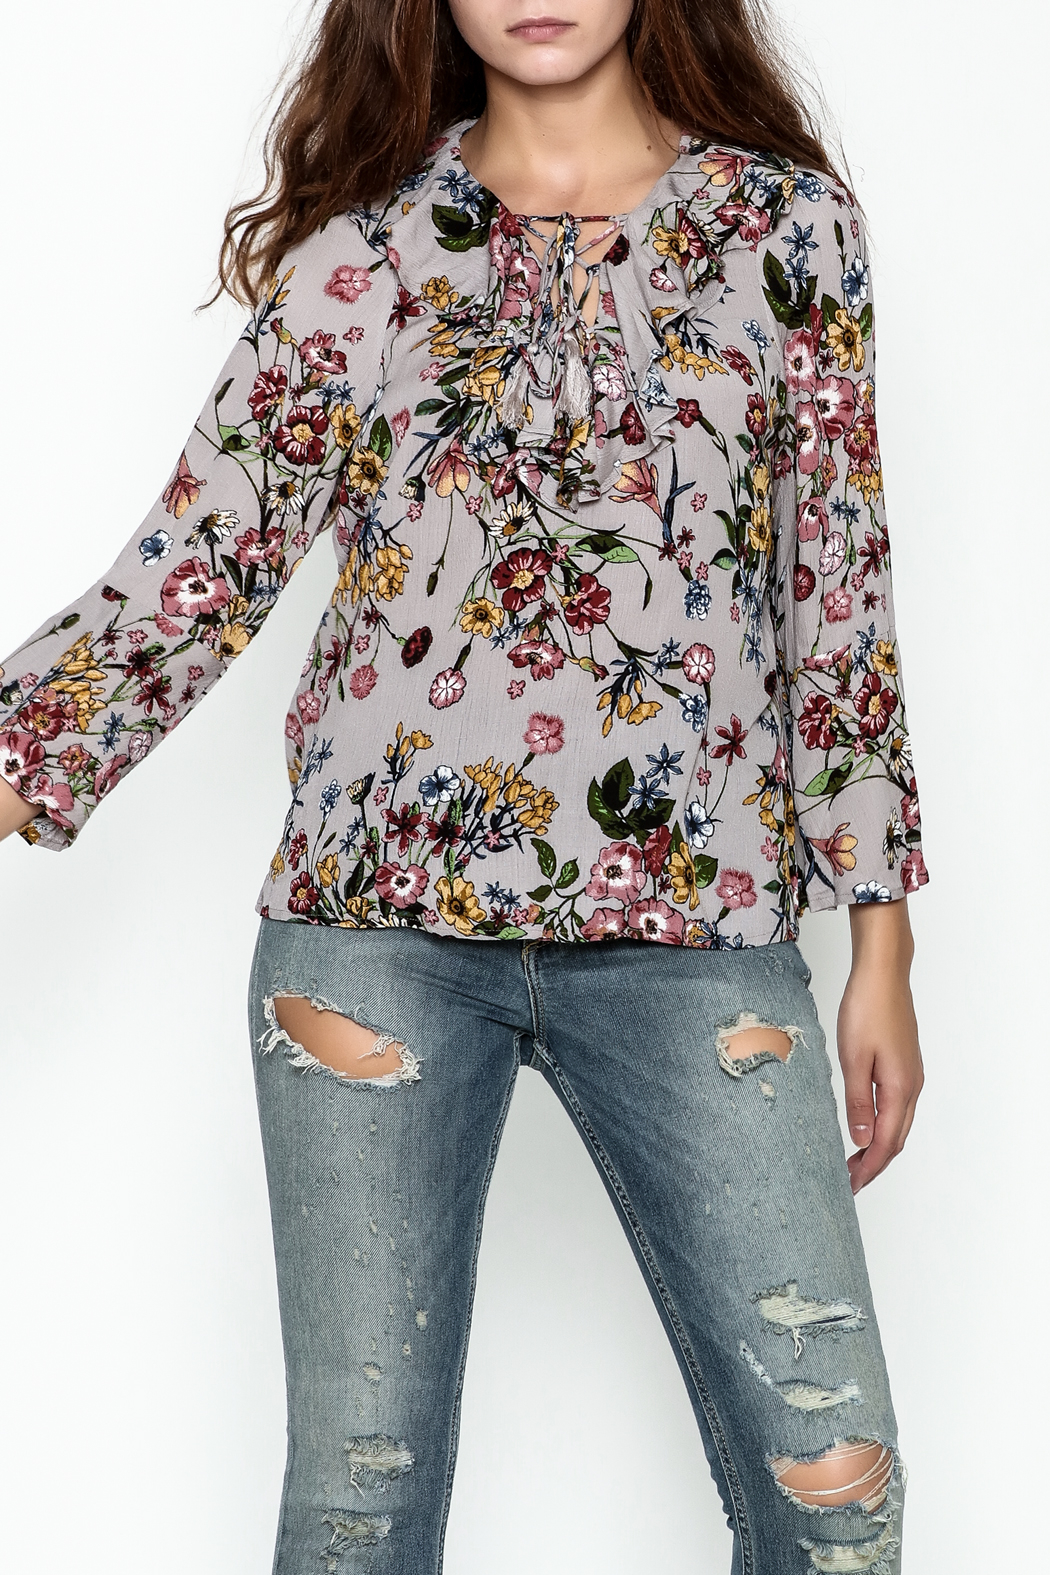 JoyJoy Ruffled Lace Up Top - Main Image